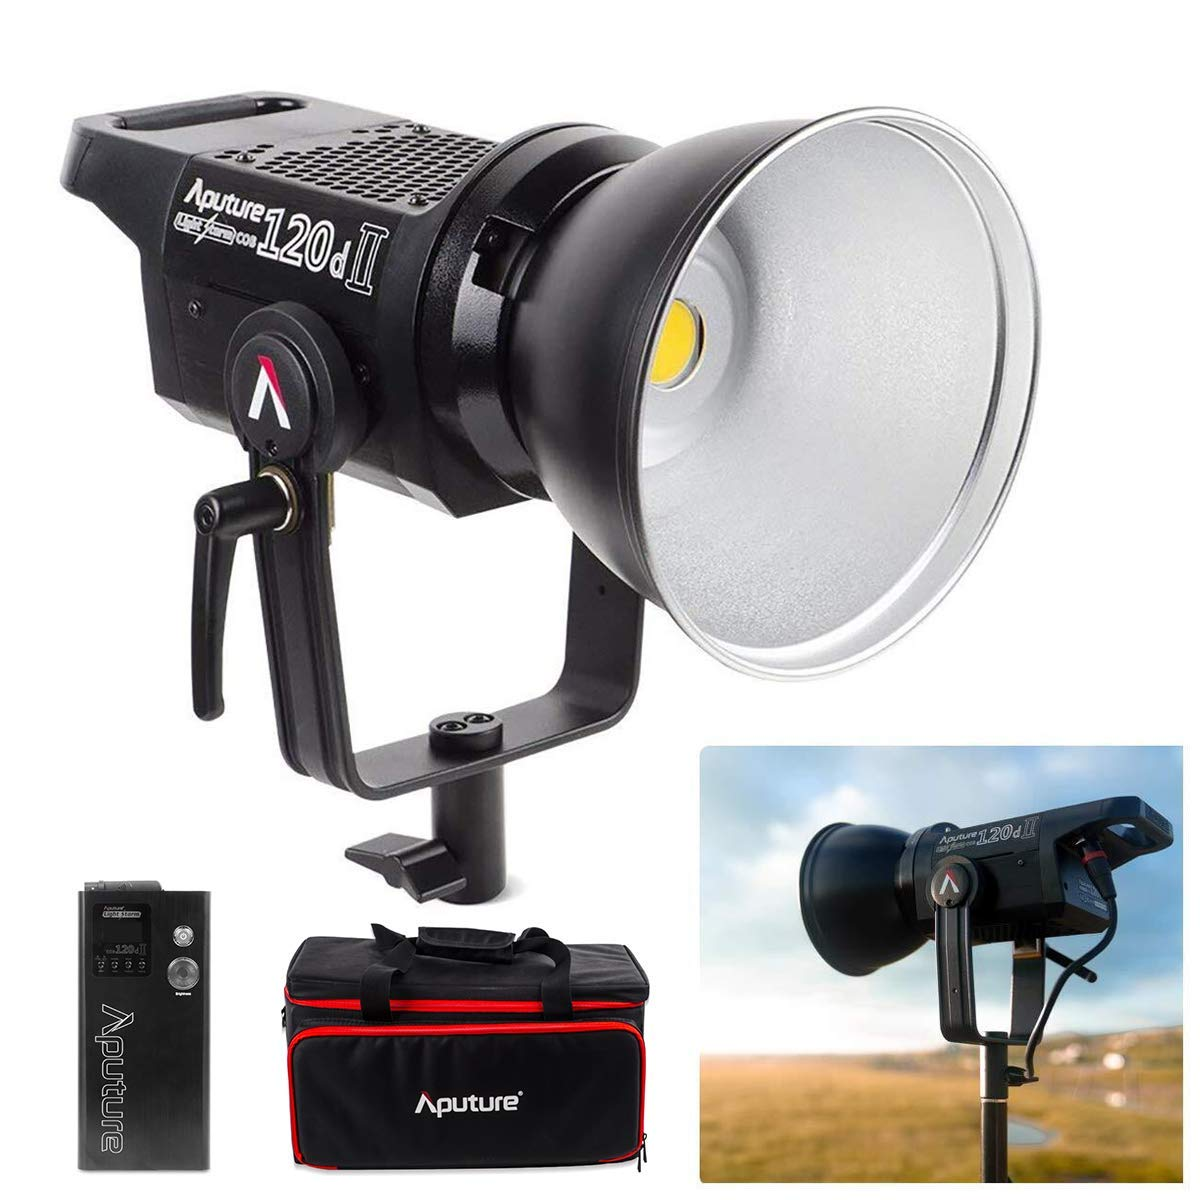 Aputure LS C120d 120D II Updated Daylight 180W LED Continuous V-Mount Video Light Kit CRI96+ TLCI97+ 30,000lux@0.5m Bowens Mount Dual Power Supply 2.4G Remote Control